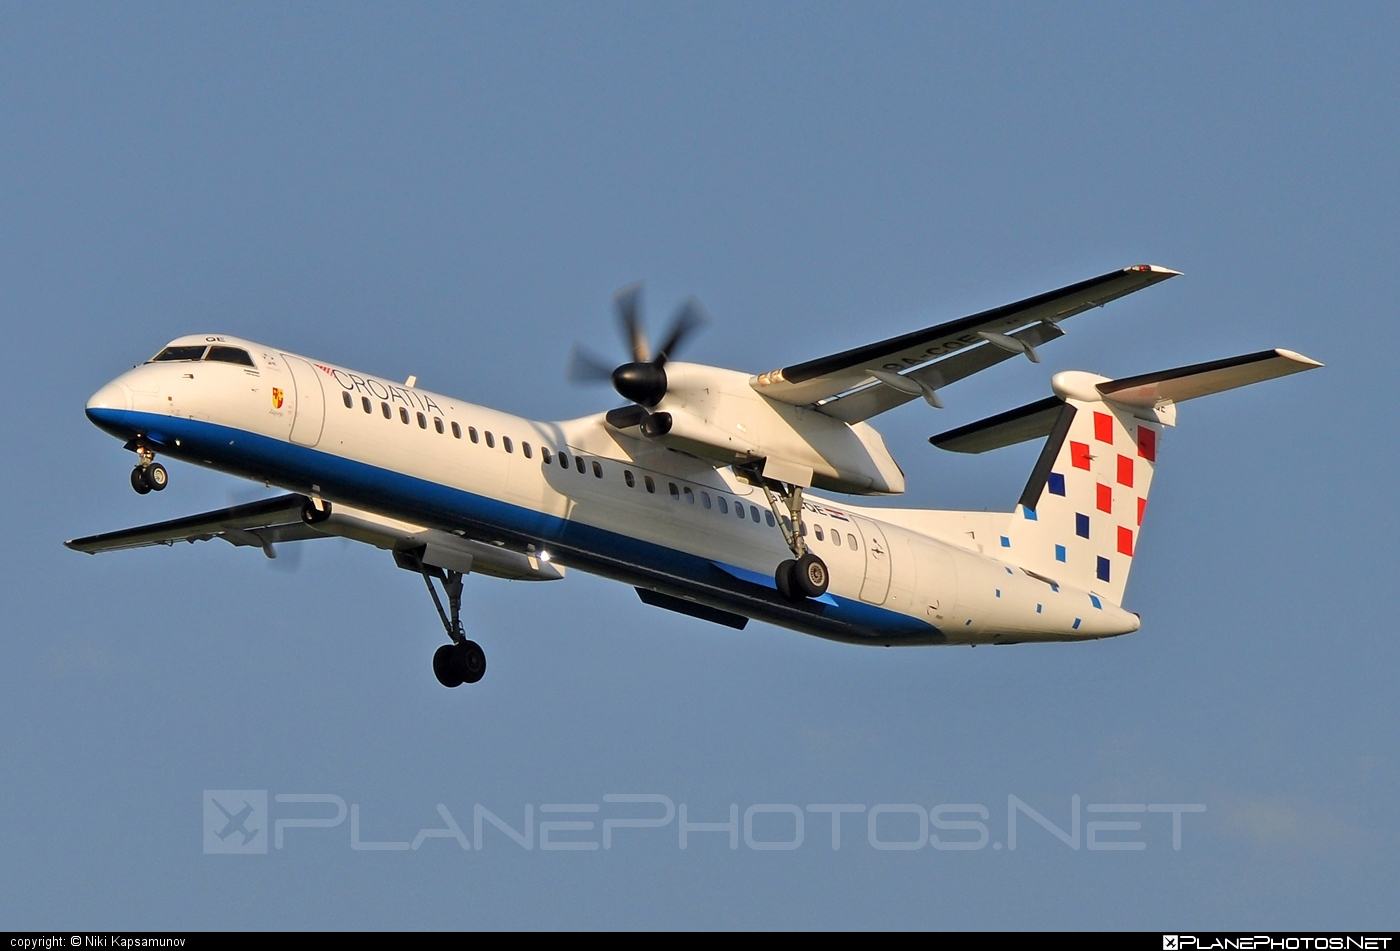 Bombardier DHC-8-Q402 Dash 8 - 9A-CQE operated by Croatia Airlines #bombardier #dash8 #dhc8 #dhc8q402